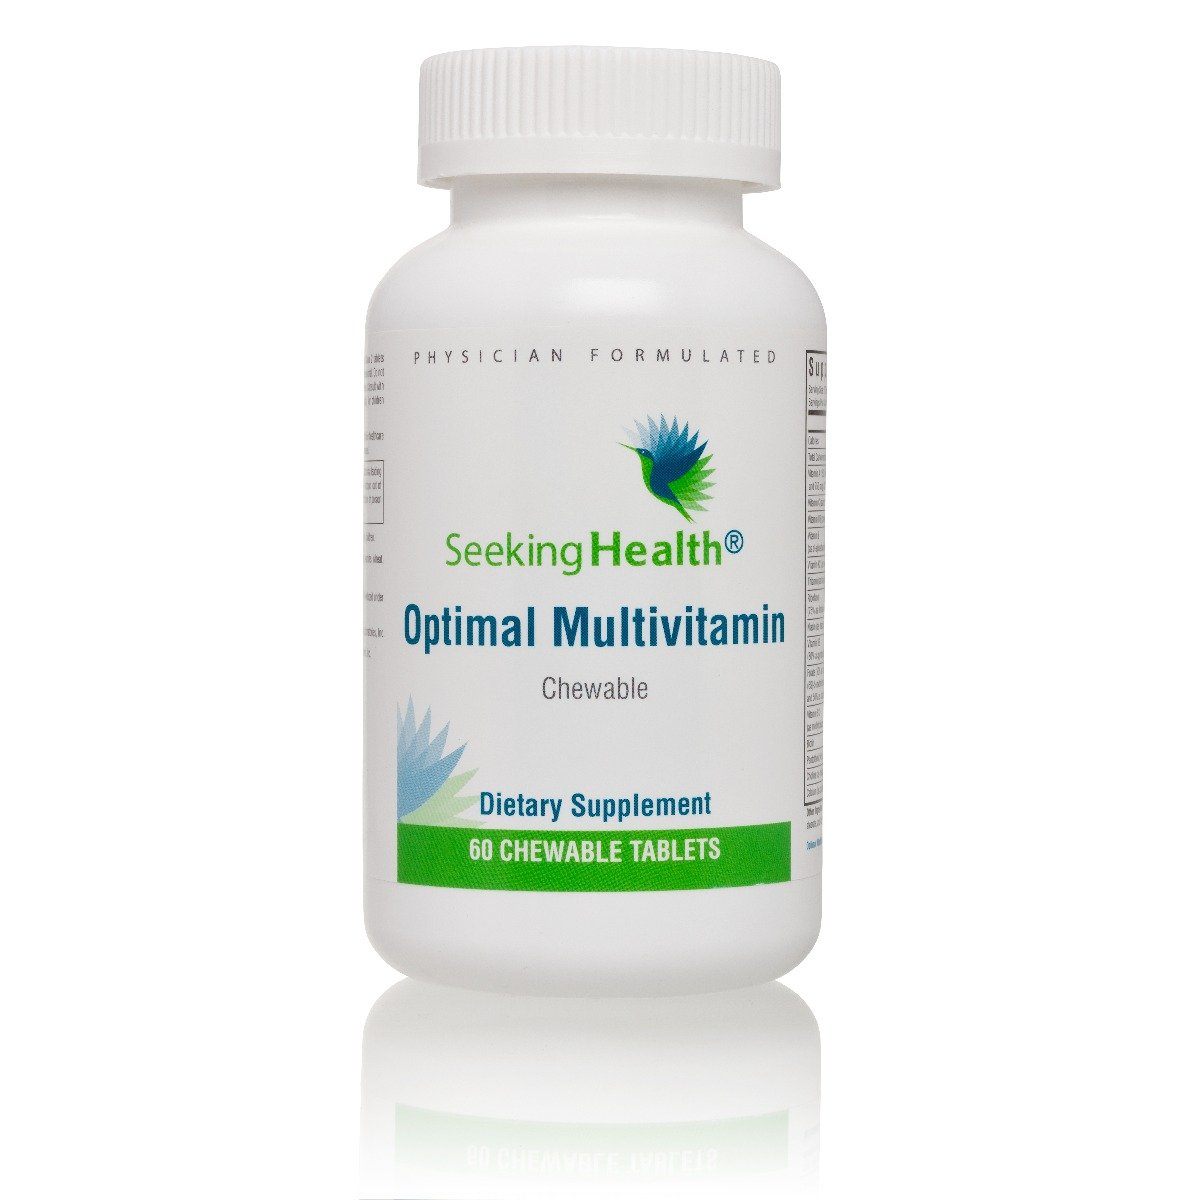 Optimal Multivitamin Chewable 60 Chewable Tablets